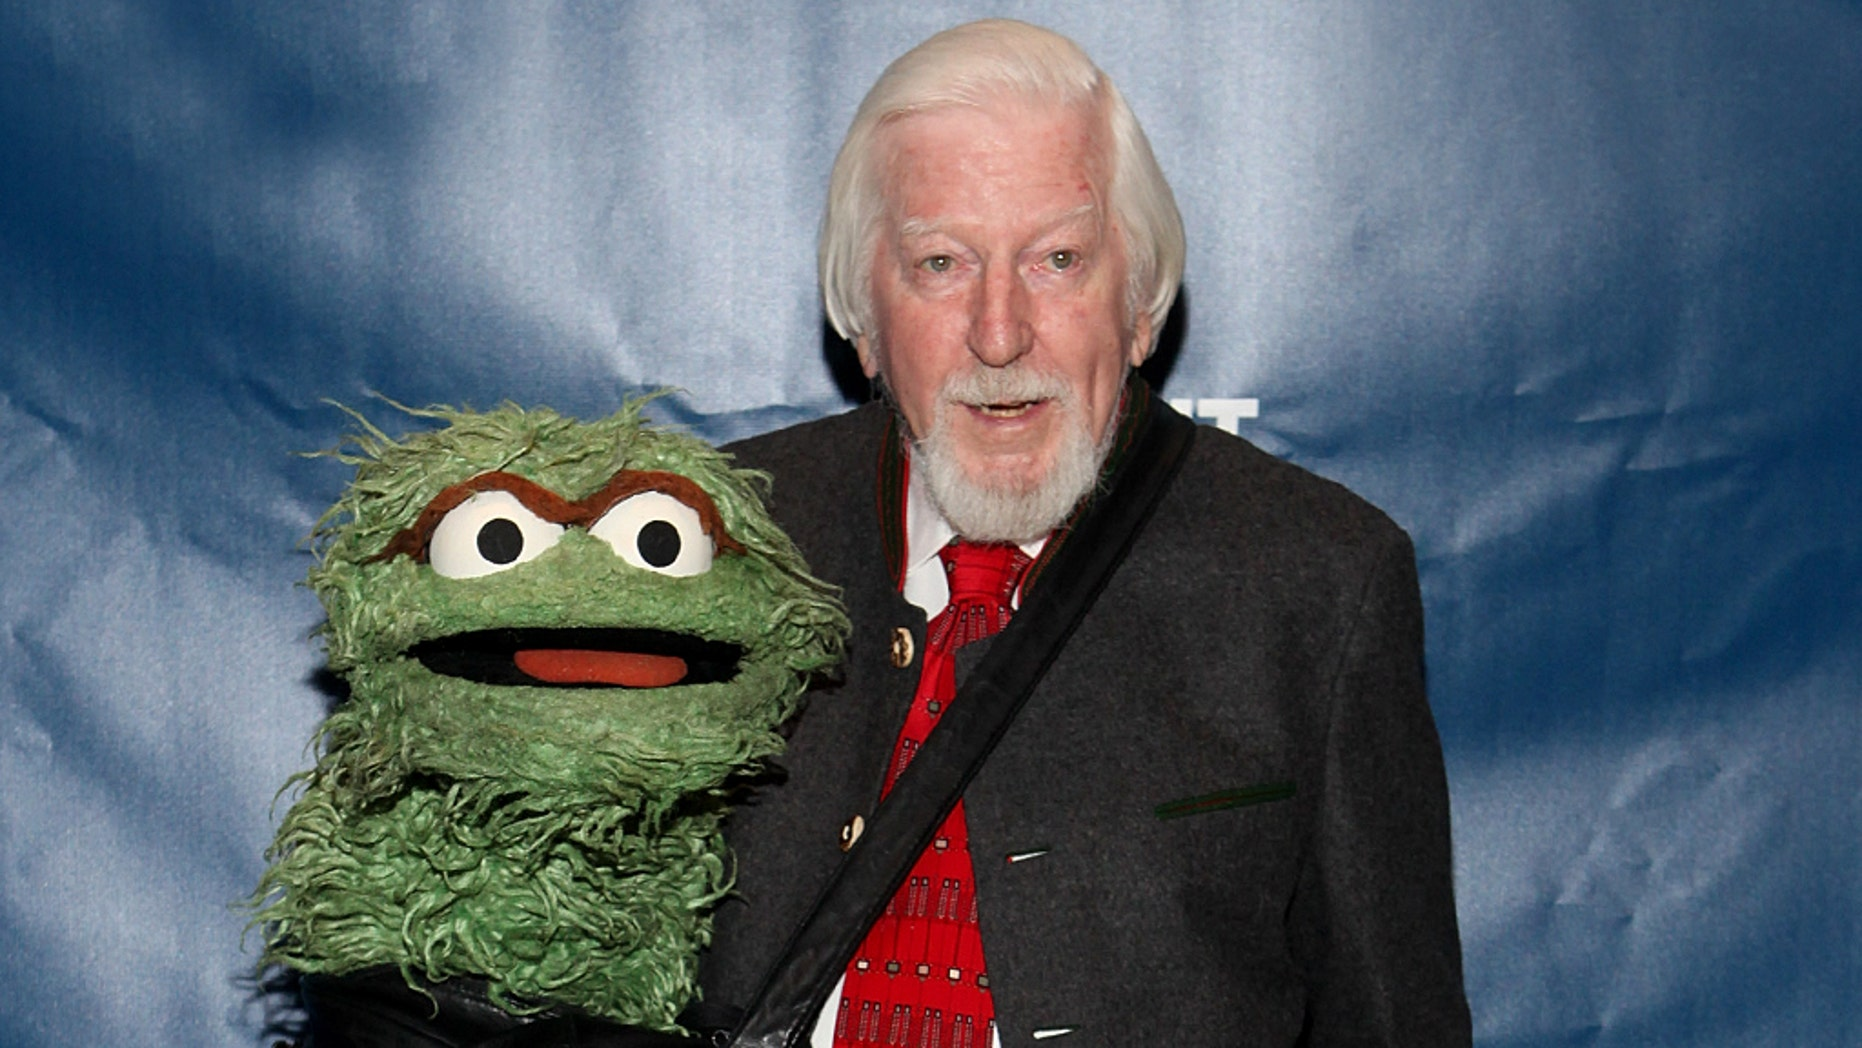 Big Bird, Oscar the Grouch puppeteer retires from 'Sesame Street'